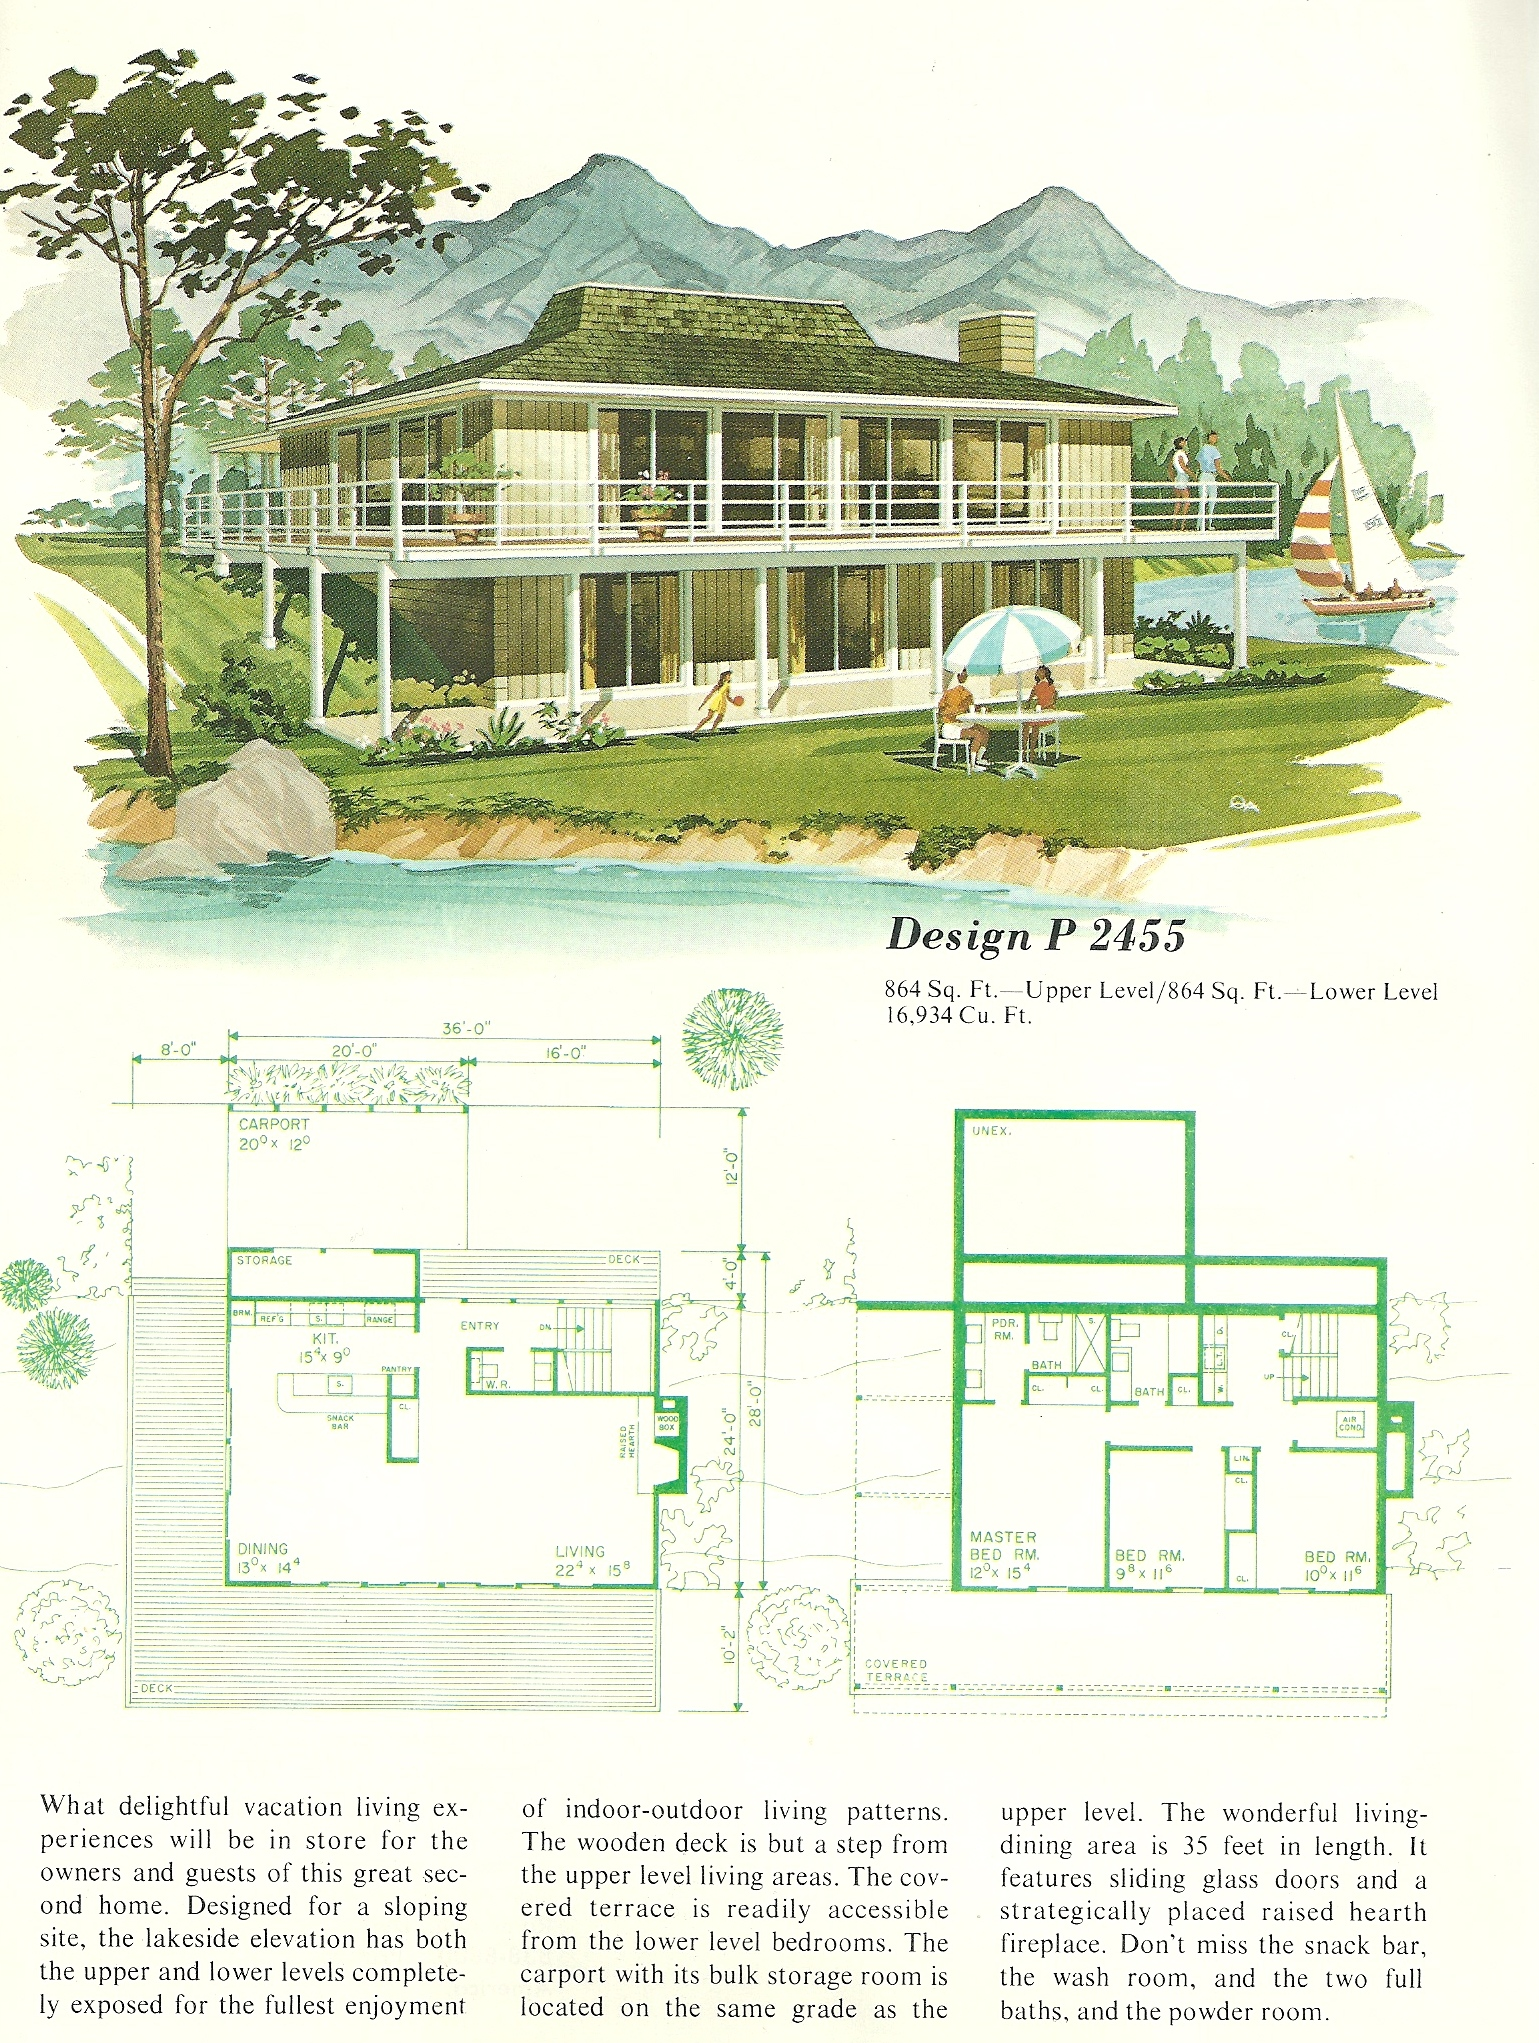 Vintage House Plans  Vacation Homes   Antique Alter EgoVintage House Plans  Vacation Homes